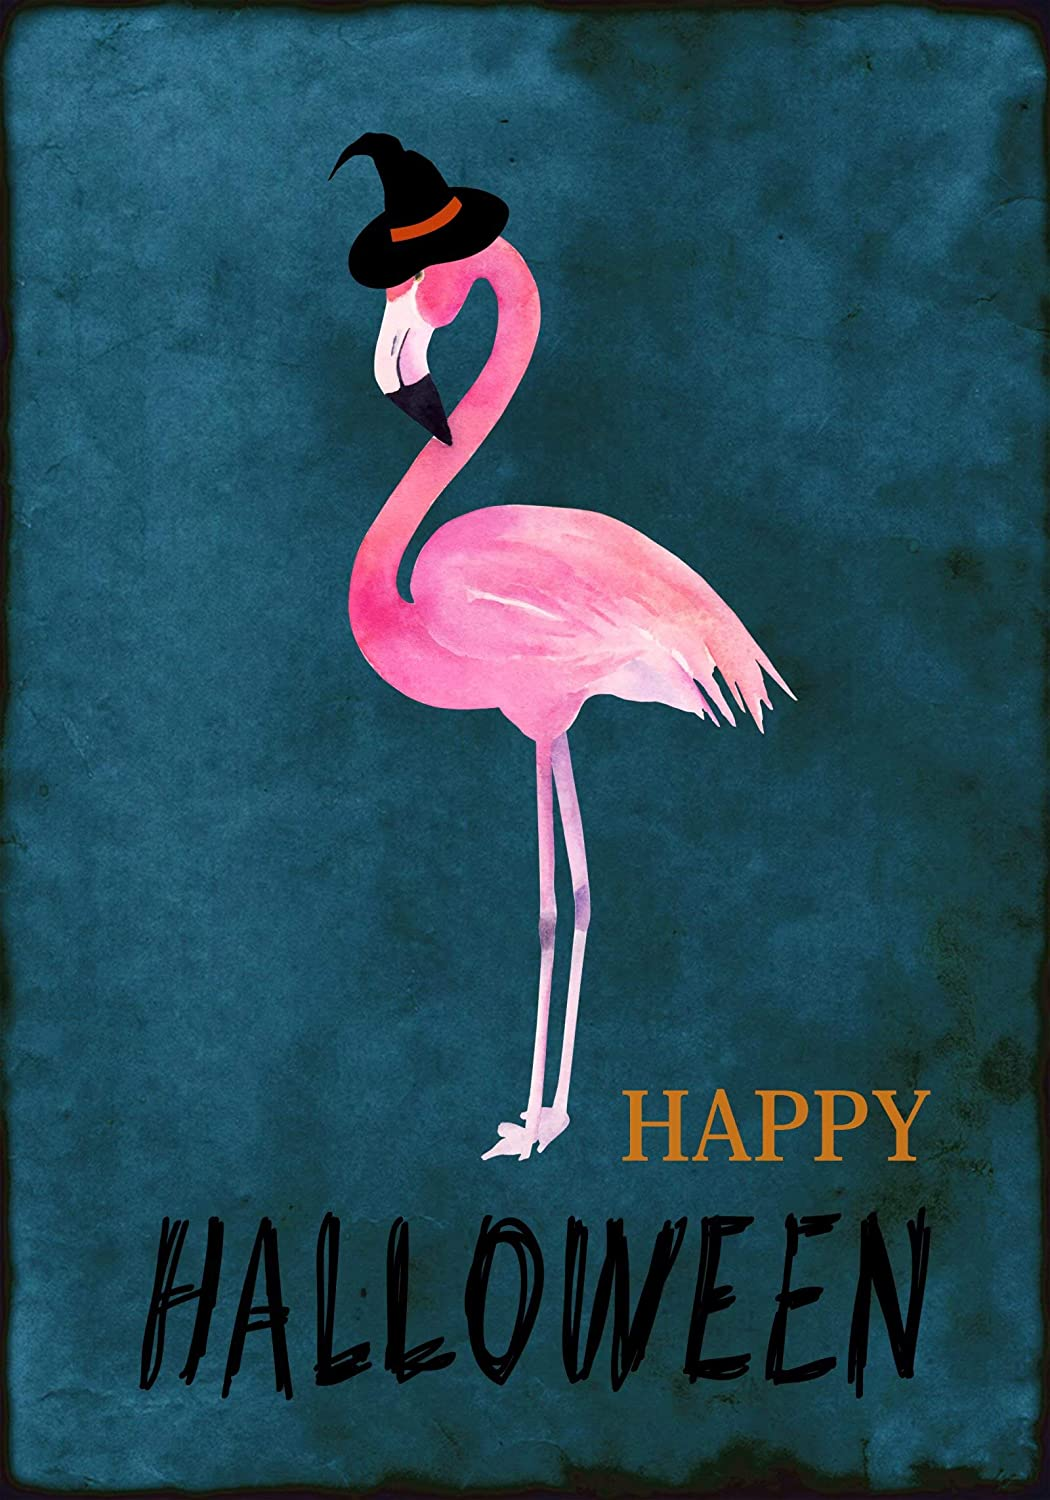 Halloween Flamingo Witch Hat Garden Flag 12 x 18 Double Sided, Scary Night Pink Bird Yard House Flags Indoor Outdoor Banner for Halloween Day Party Home Decor